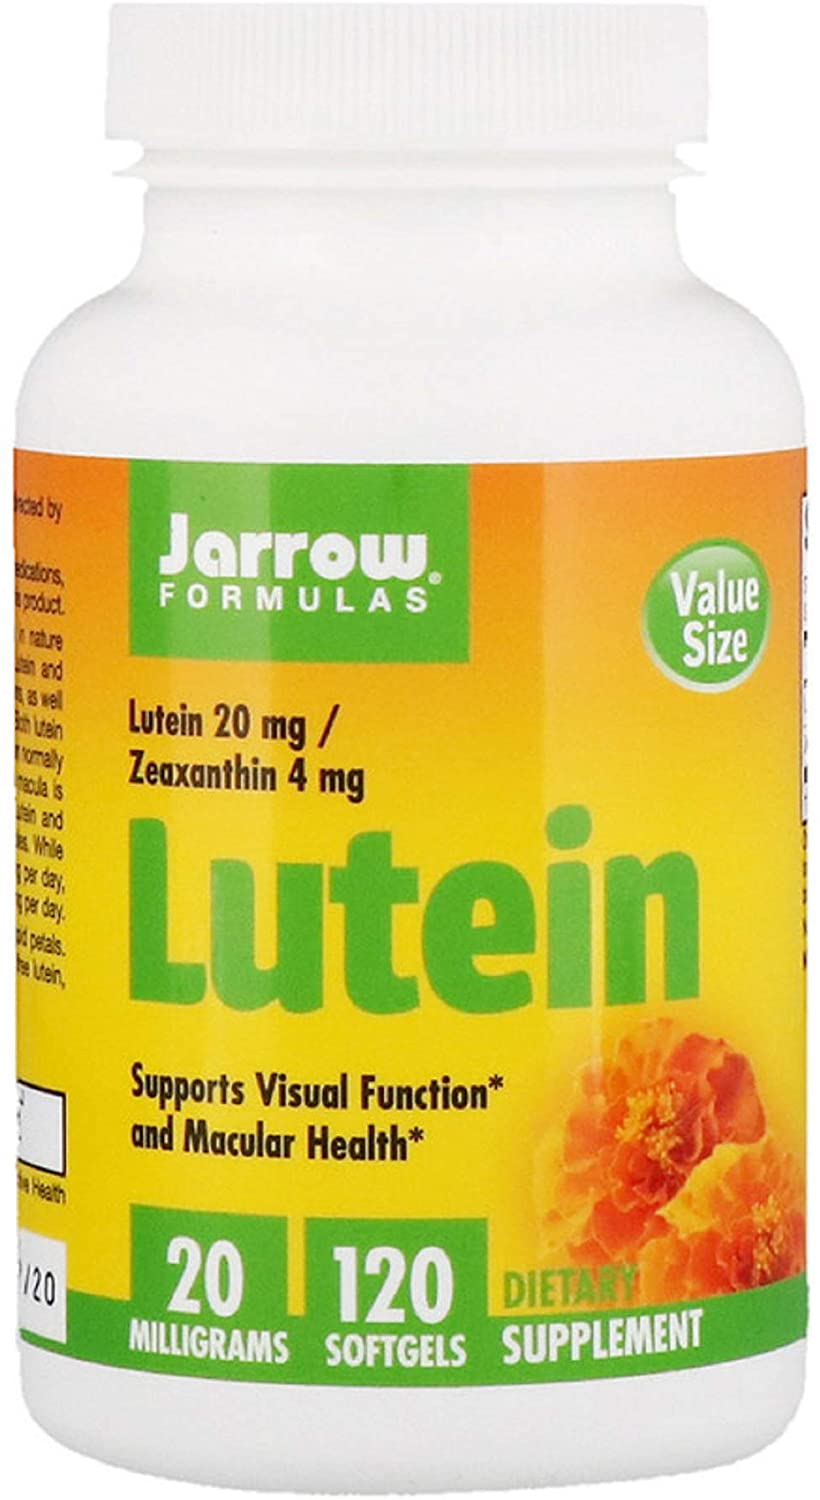 Lutein 20 mg Zeaxanthin 4 mg Supports Visual Function and Macular Health 120 Softgels